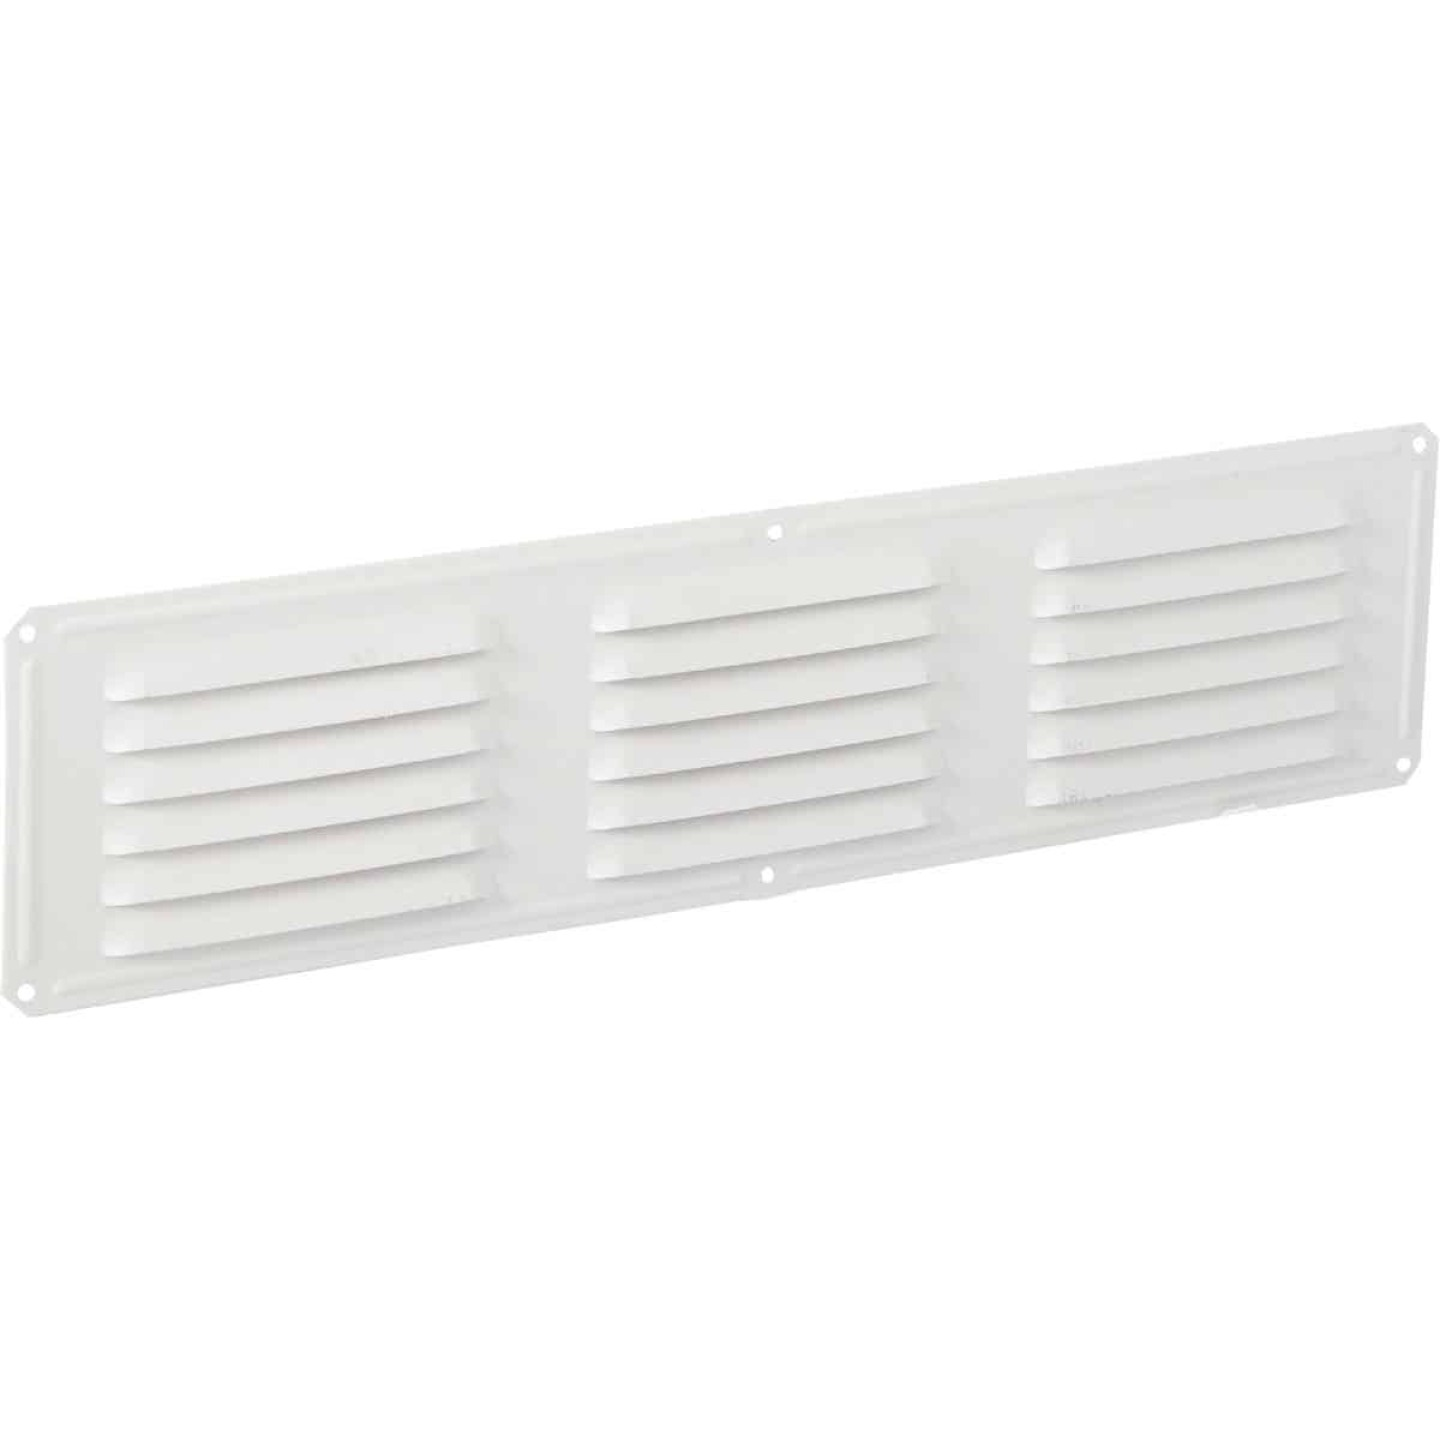 Air Vent 16 In. x 4 In. White Aluminum Under Eave Vent Image 1